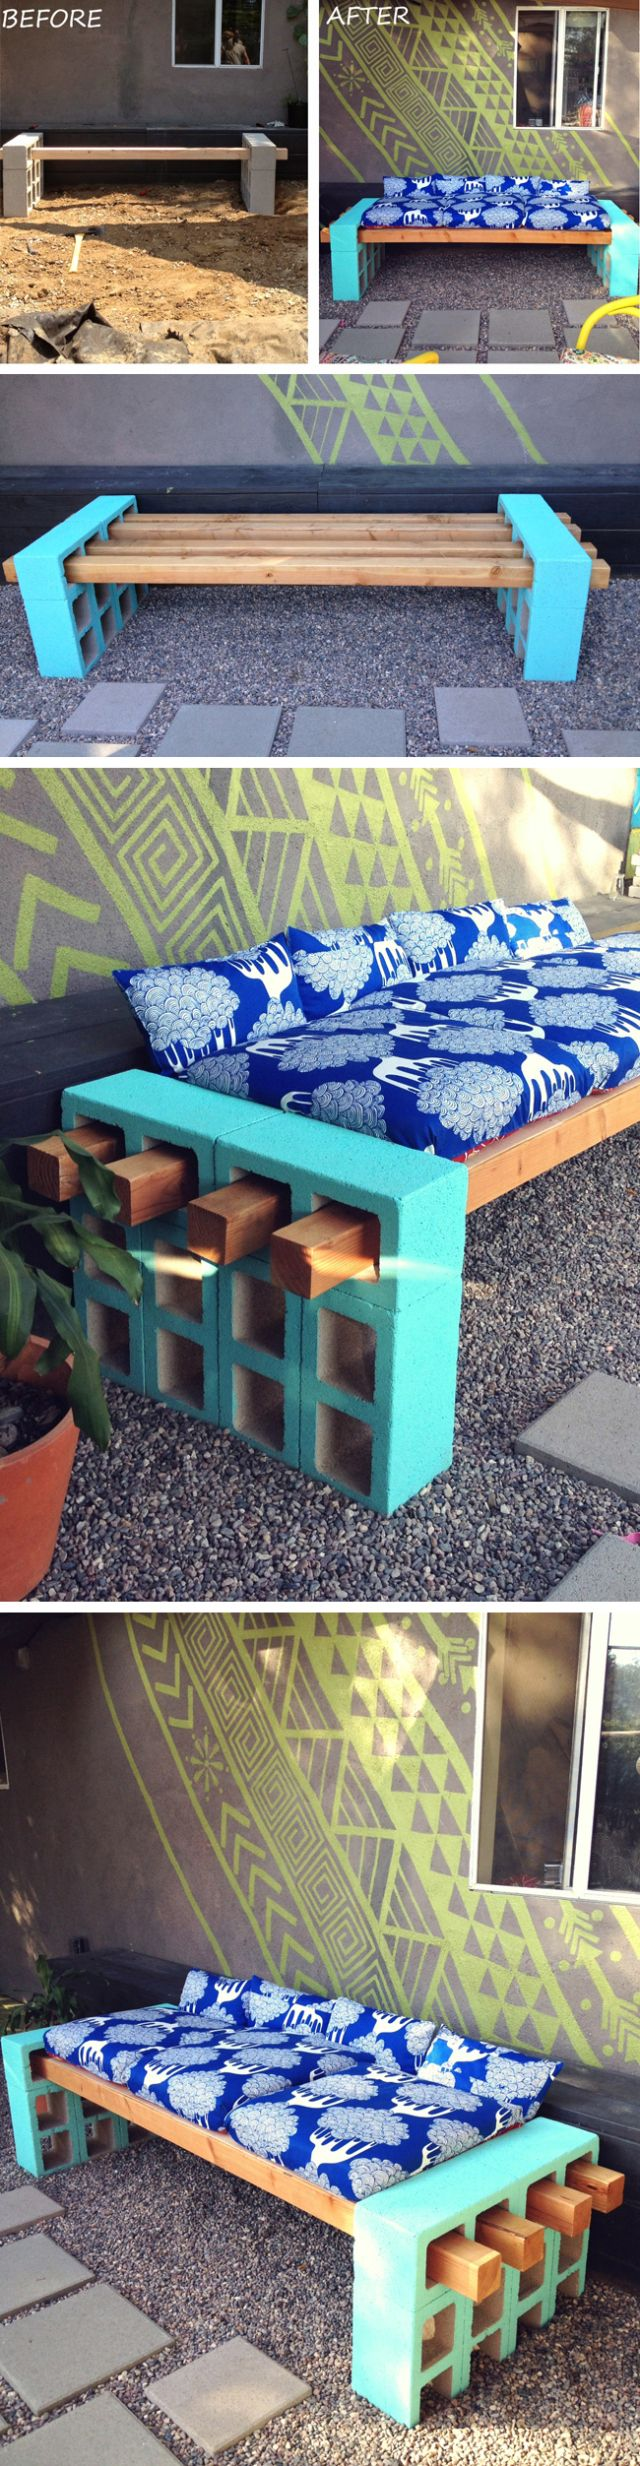 05May2015 Awesome DIY Inspiration: DIY Cement Block Bench categories: DIY inspiration